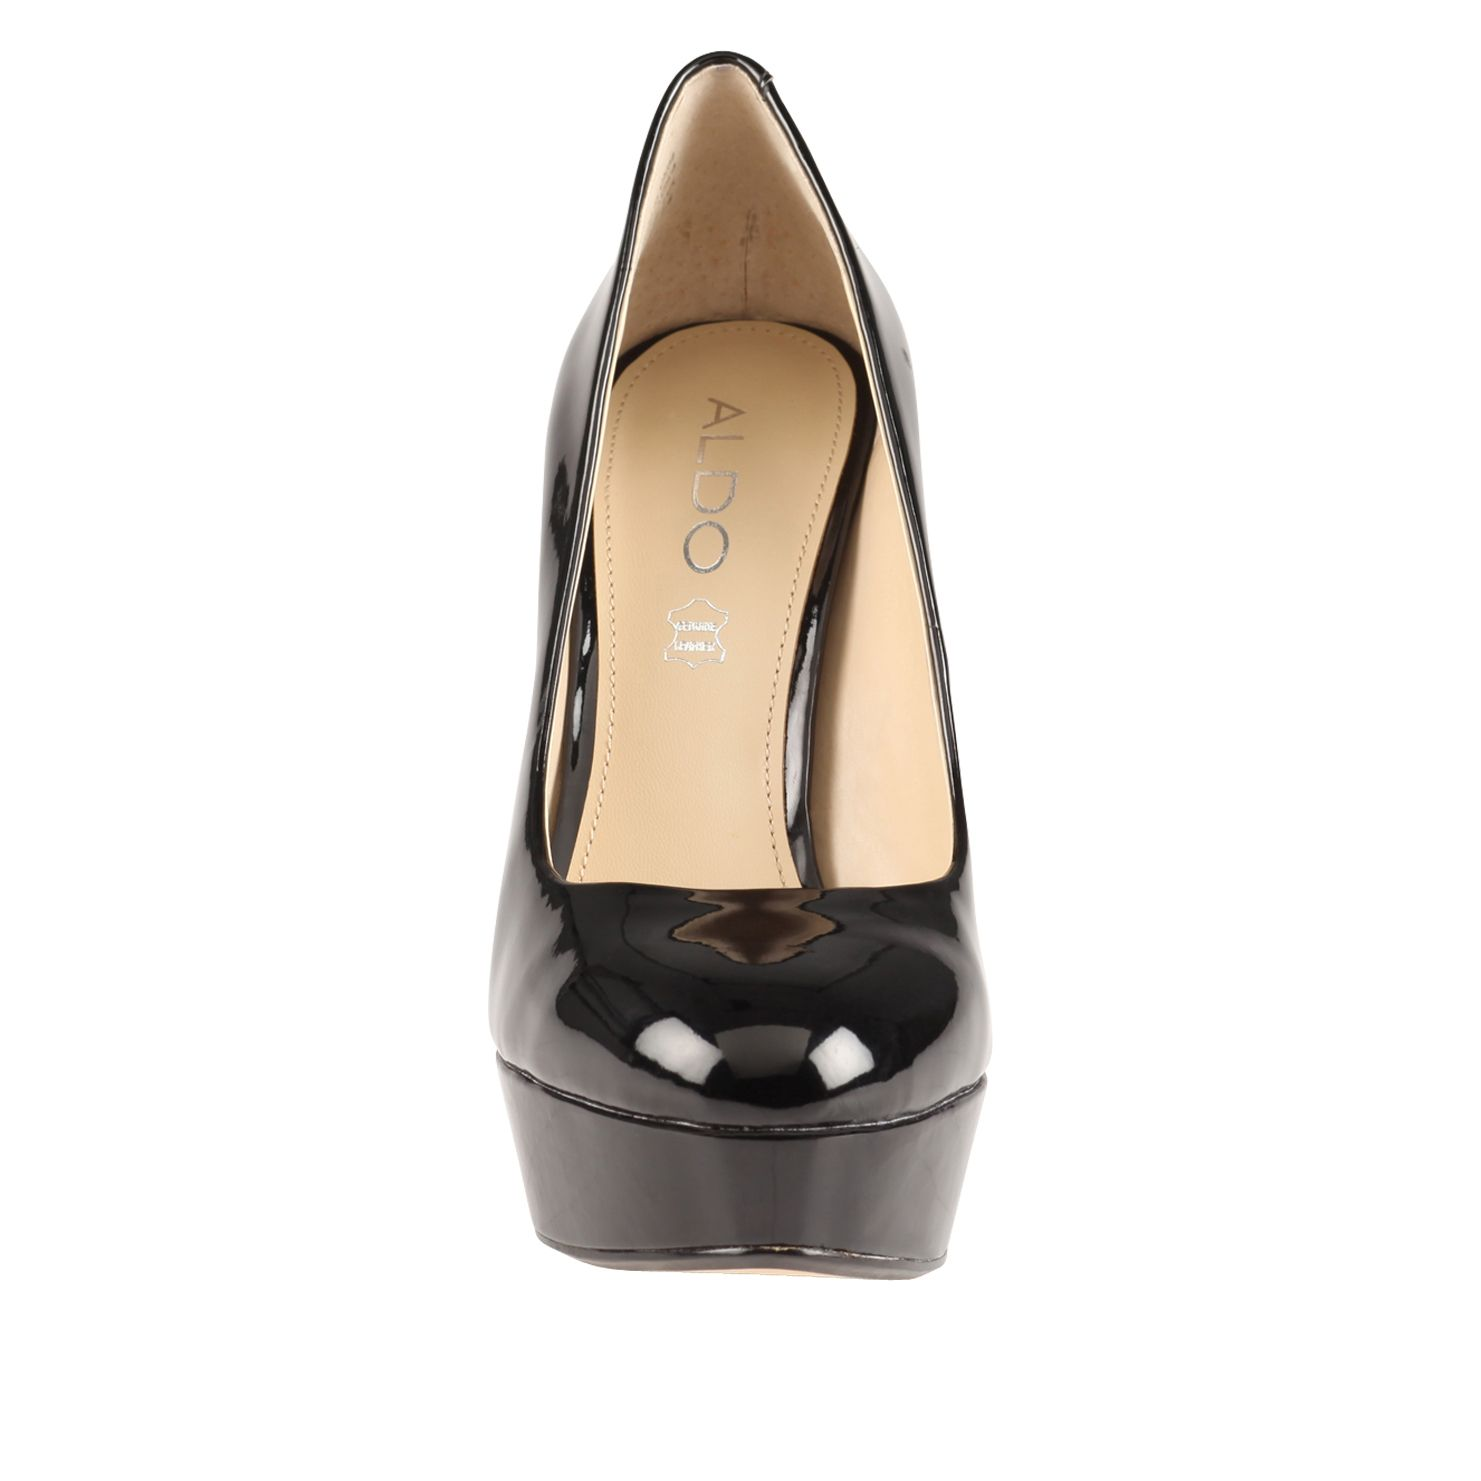 Monier court shoes